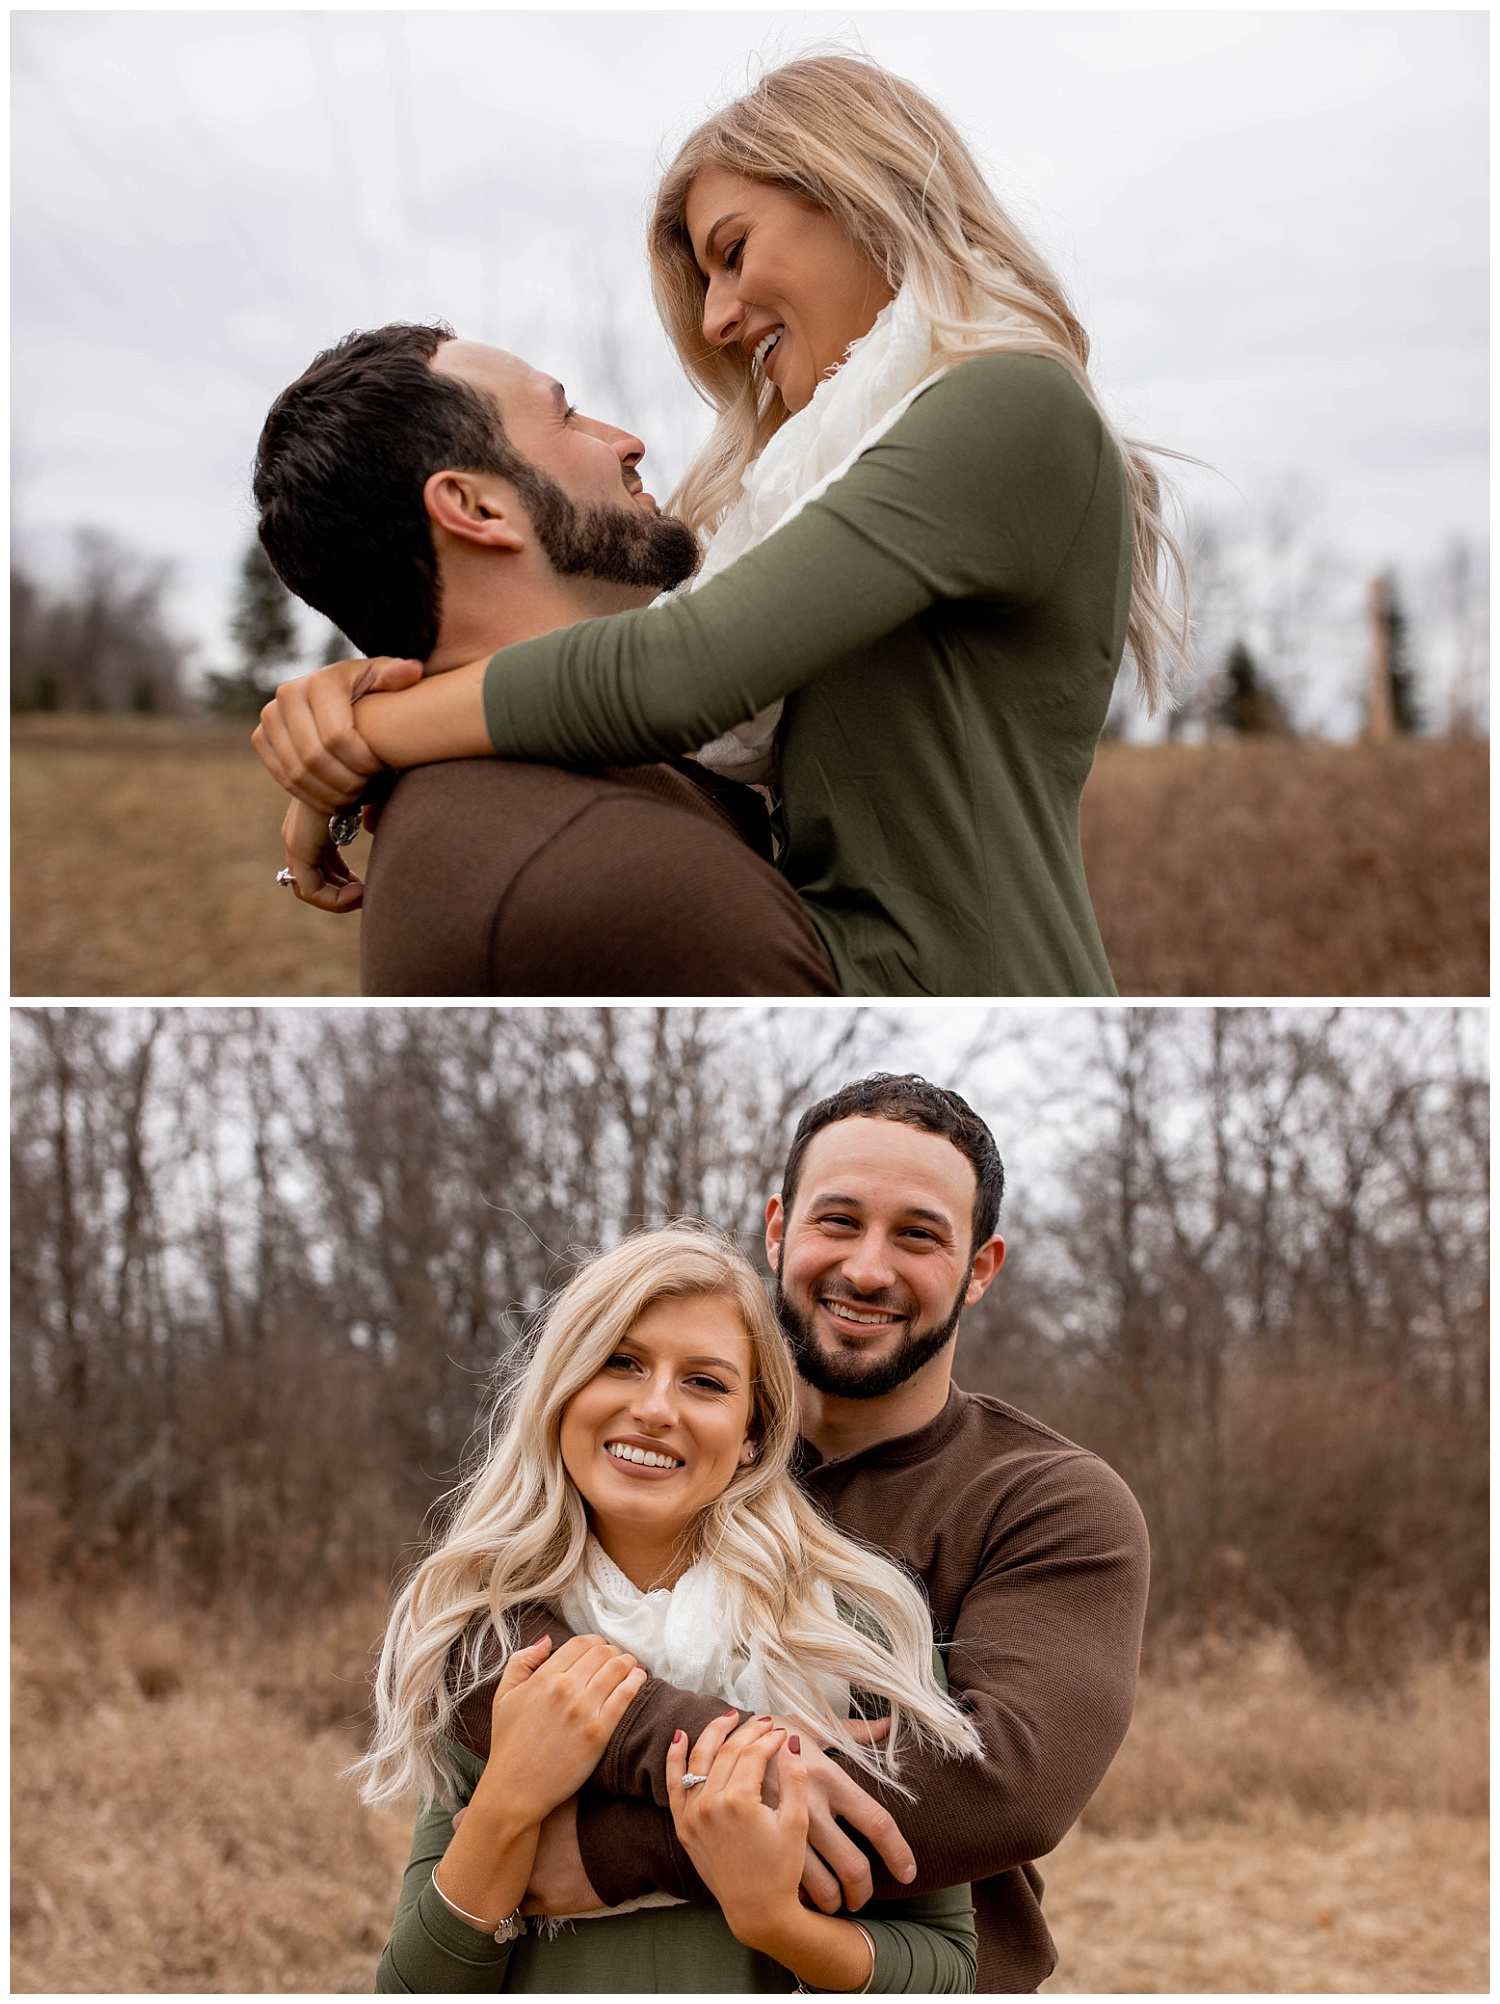 Christmas Tree Farms-Amanda & Jake Engagement_0191.jpg